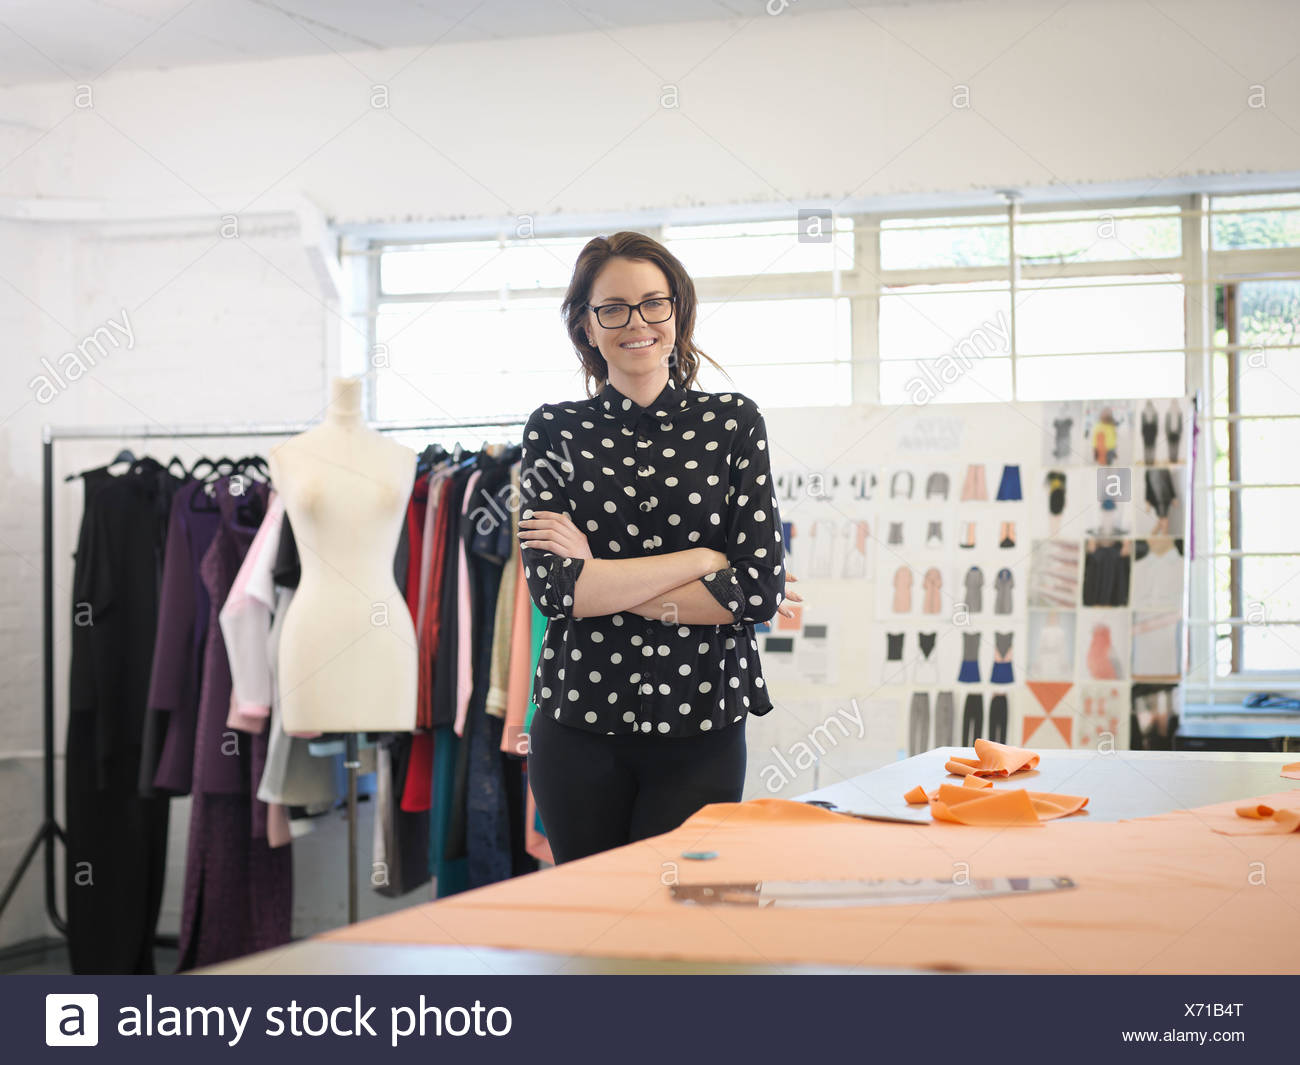 Fashion designer in fashion design studio, portrait - Stock Image